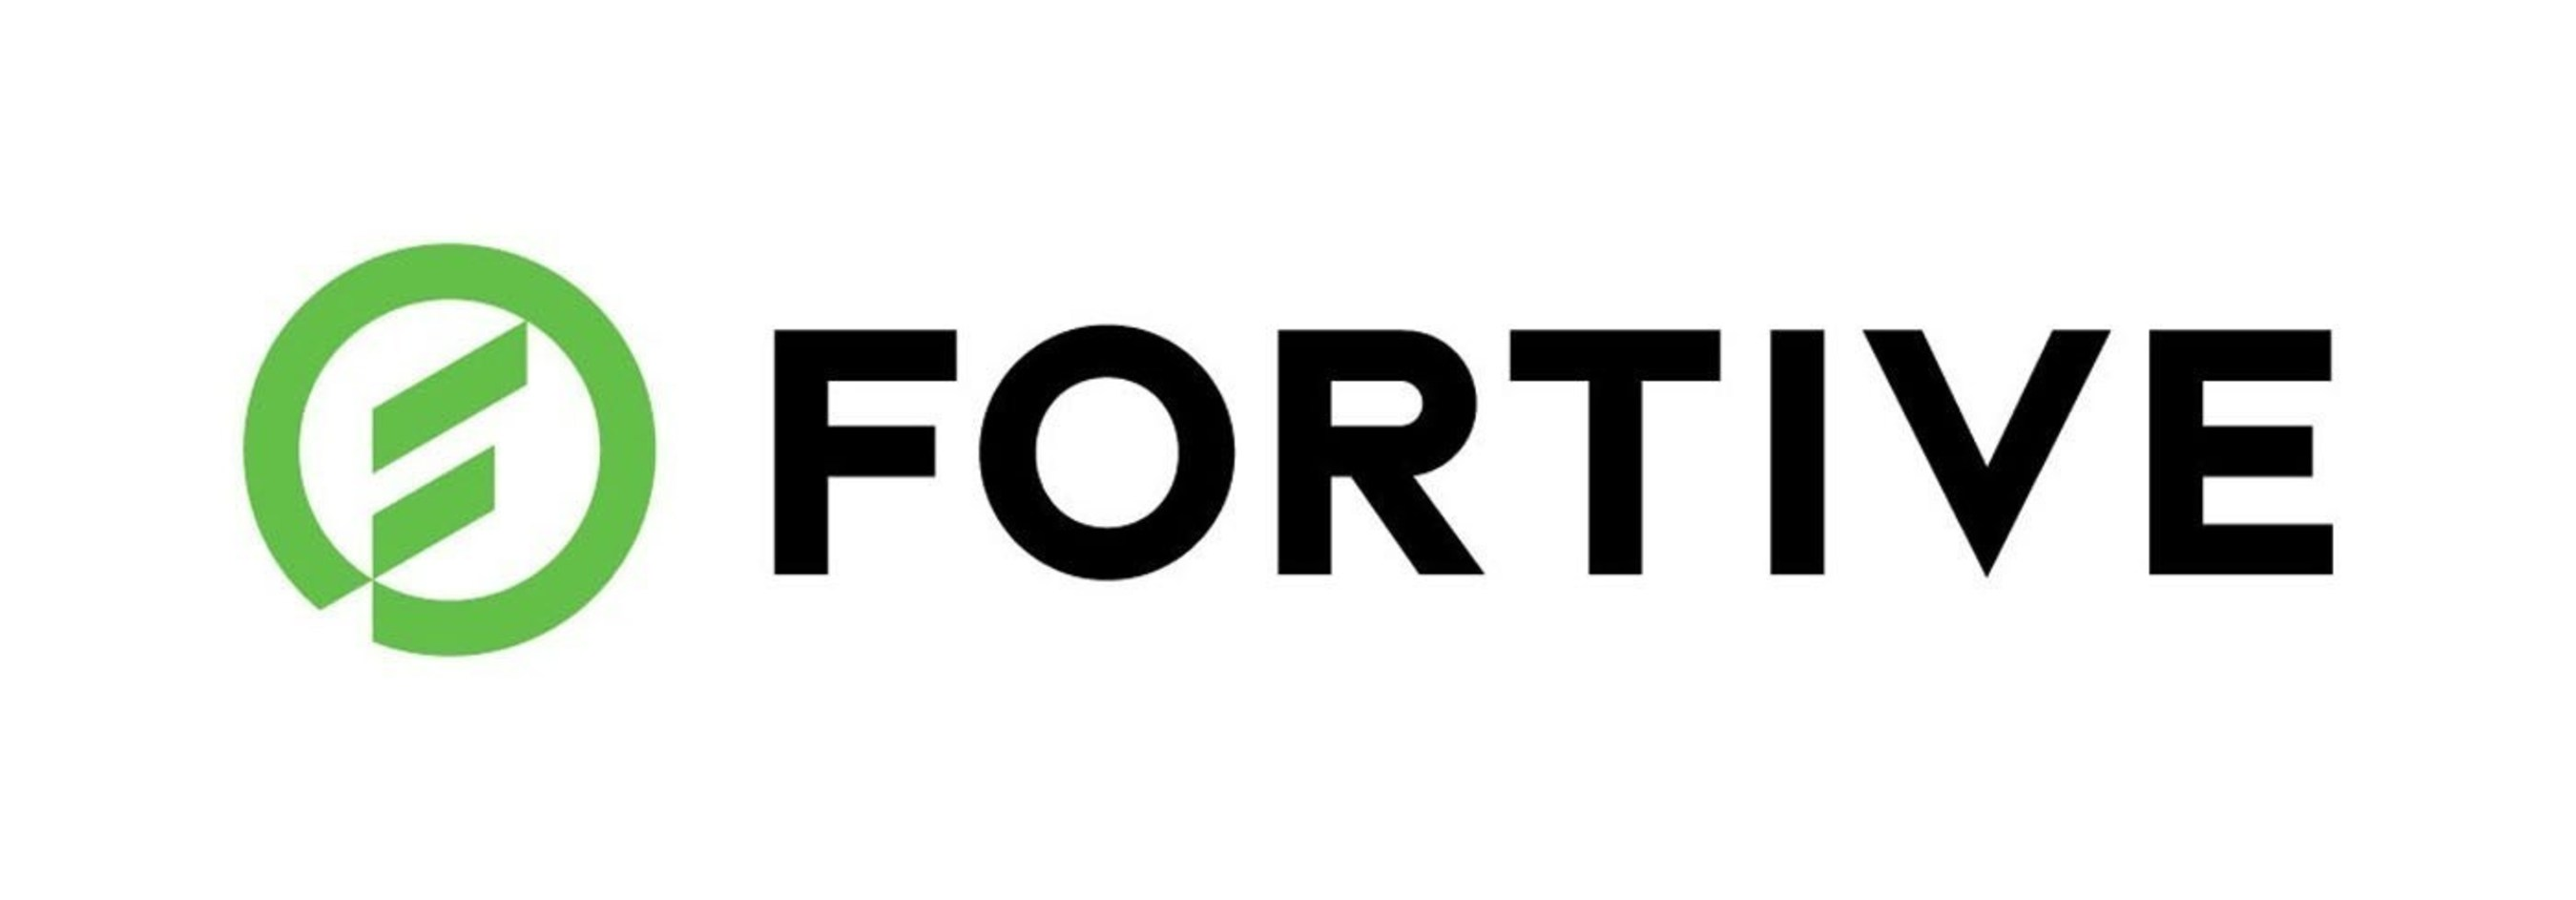 Shar Dubey Joins 'Fortive' Board of Directors